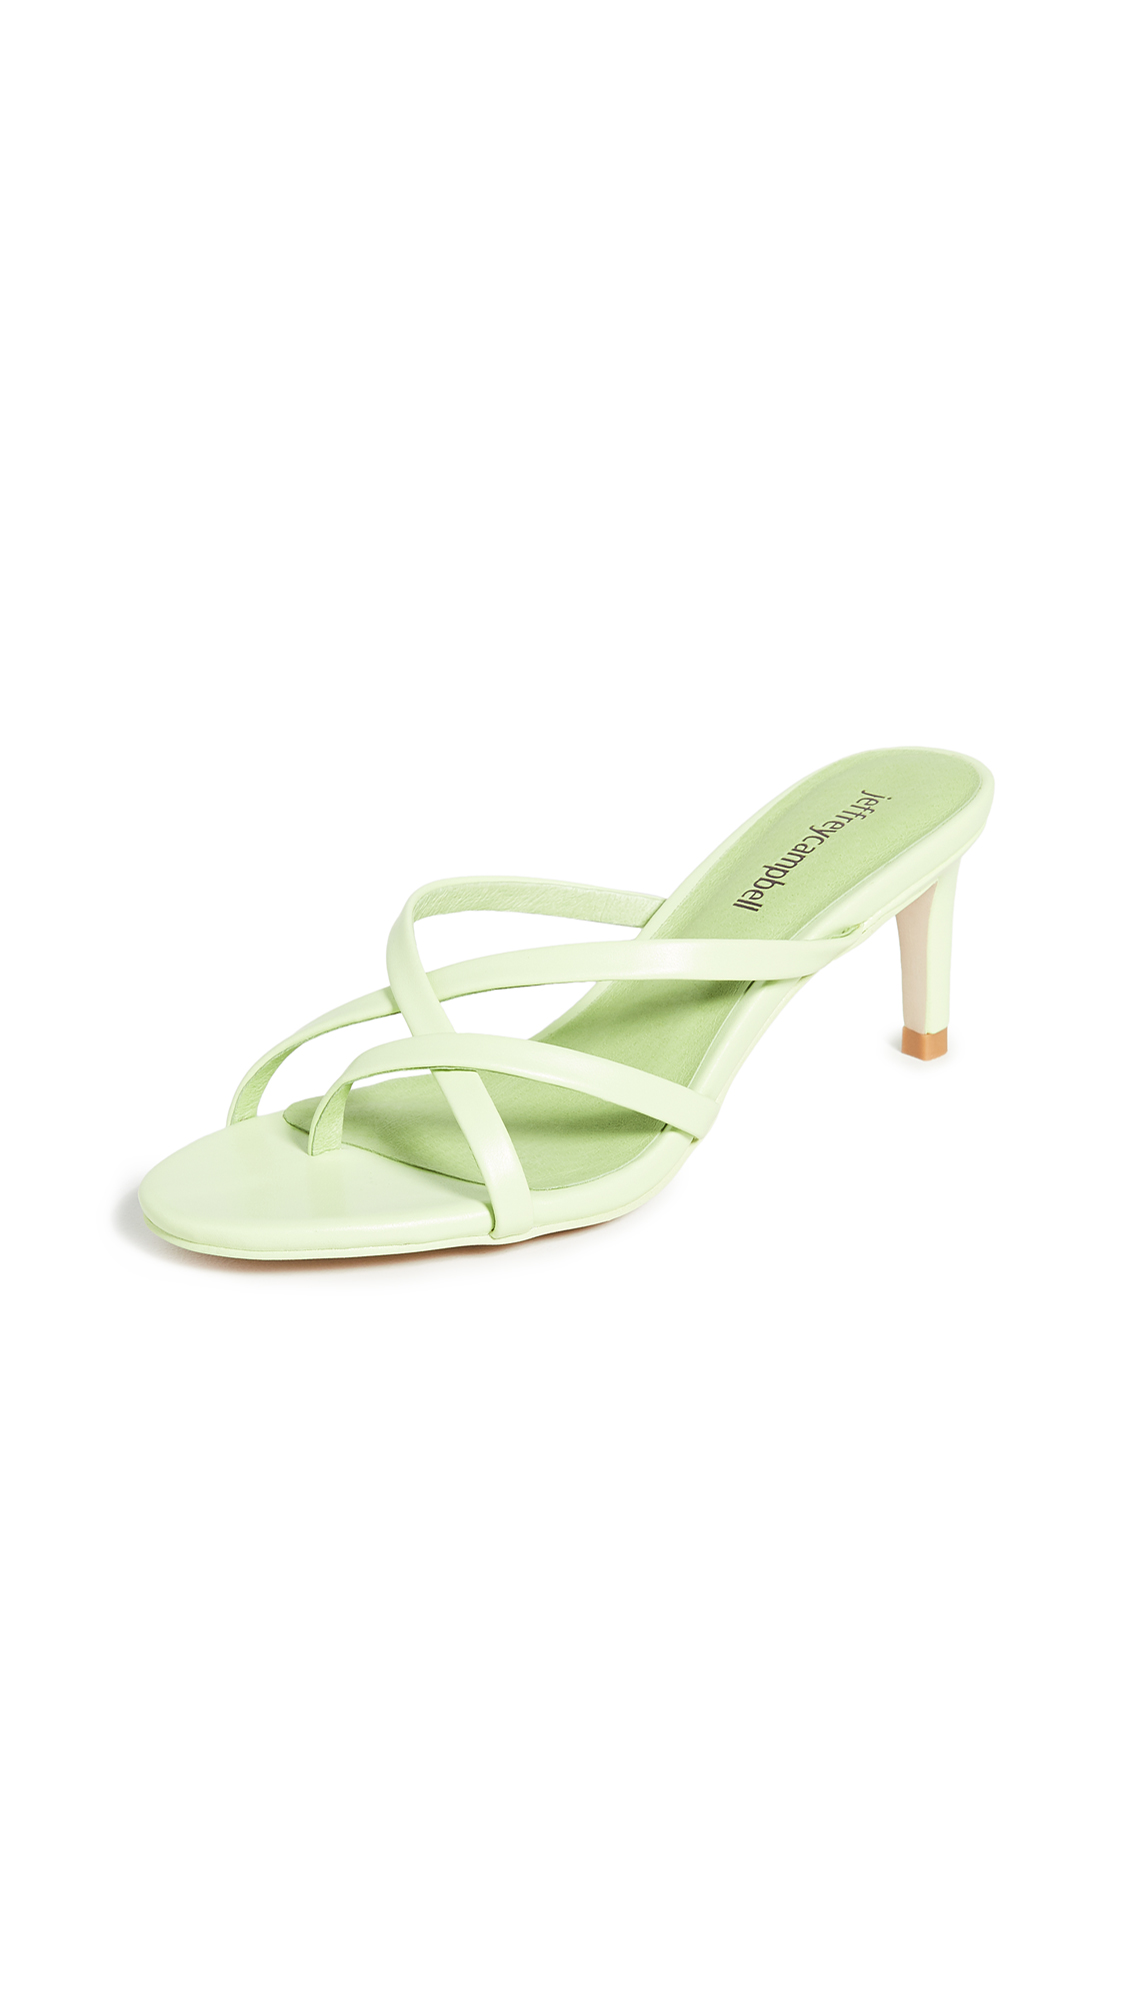 Jeffrey Campbell Ficelle Sandals – 50% Off Sale